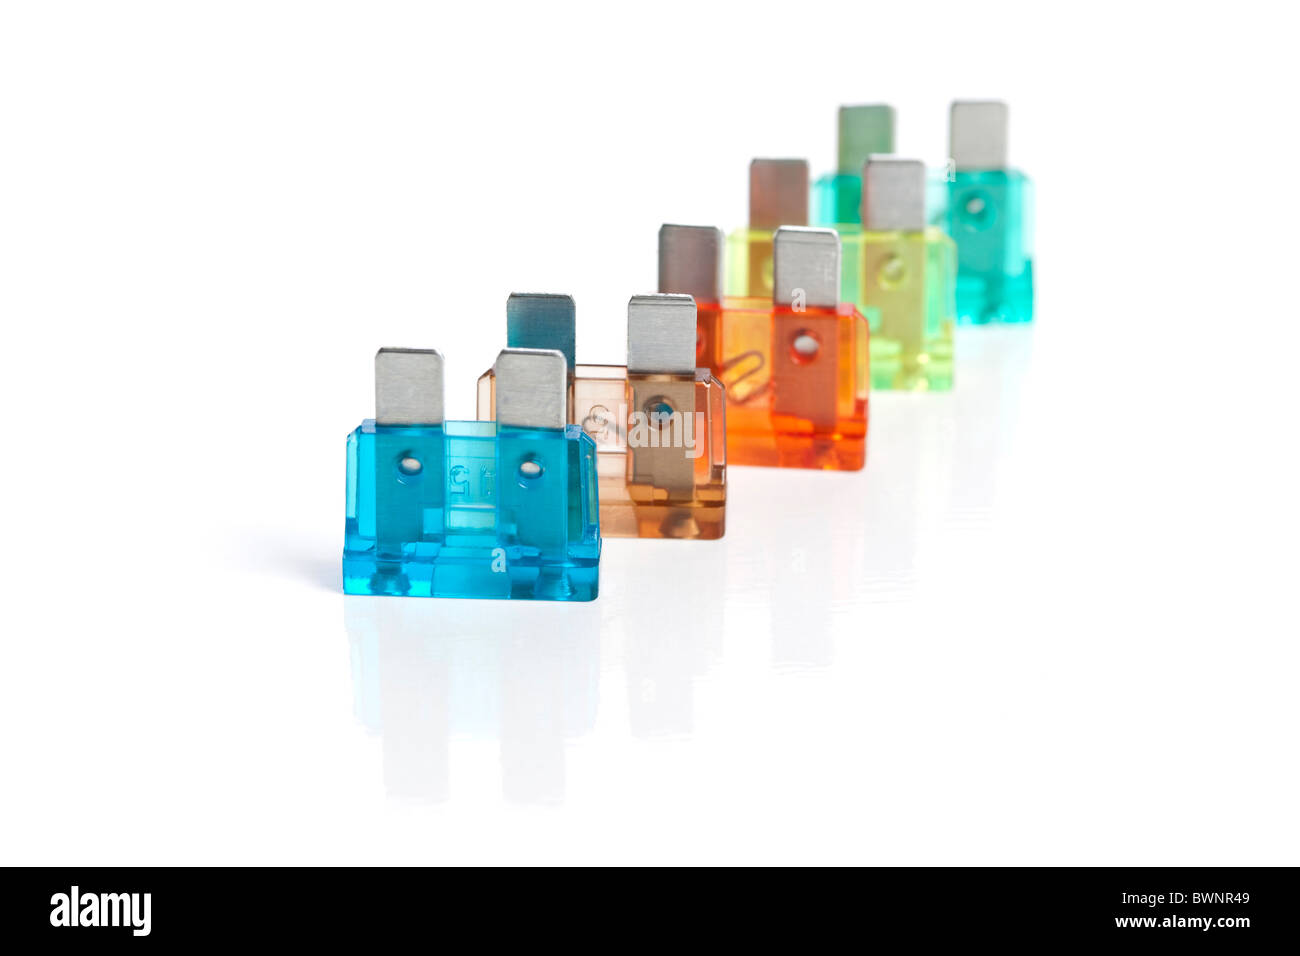 Electric fuses on white background - Stock Image